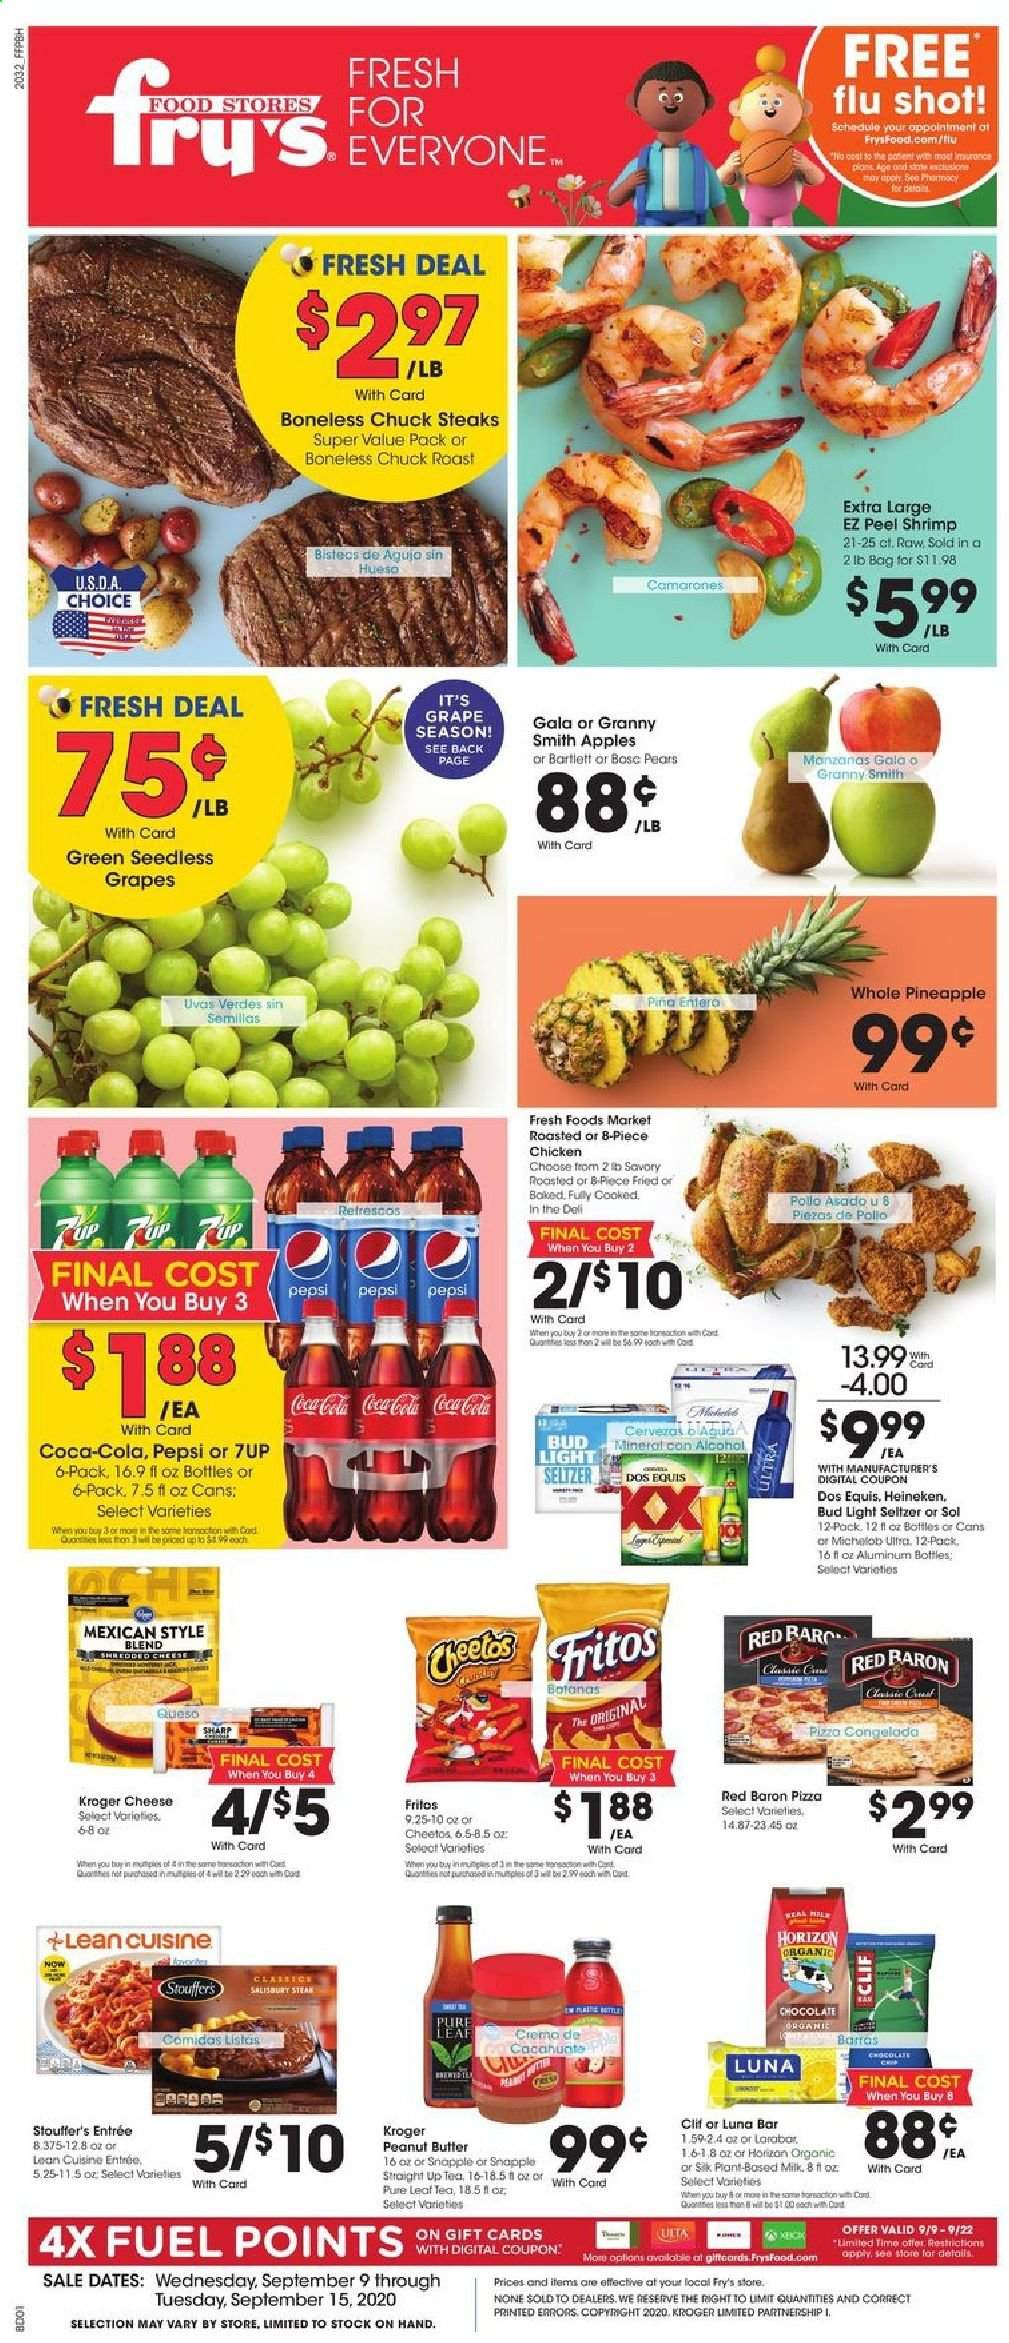 Fry's Flyer - 09.09.2020 - 09.15.2020 - Sales products - Bud Light, Dos Equis, Michelob, apples, grapes, seedless grapes, pineapple, pears, cod, shrimps, pizza, cheese, chocolate, Cheetos, Fritos, peanut butter, Coca-Cola, Pepsi, seltzer, tea, chicken, Sharp. Page 1.